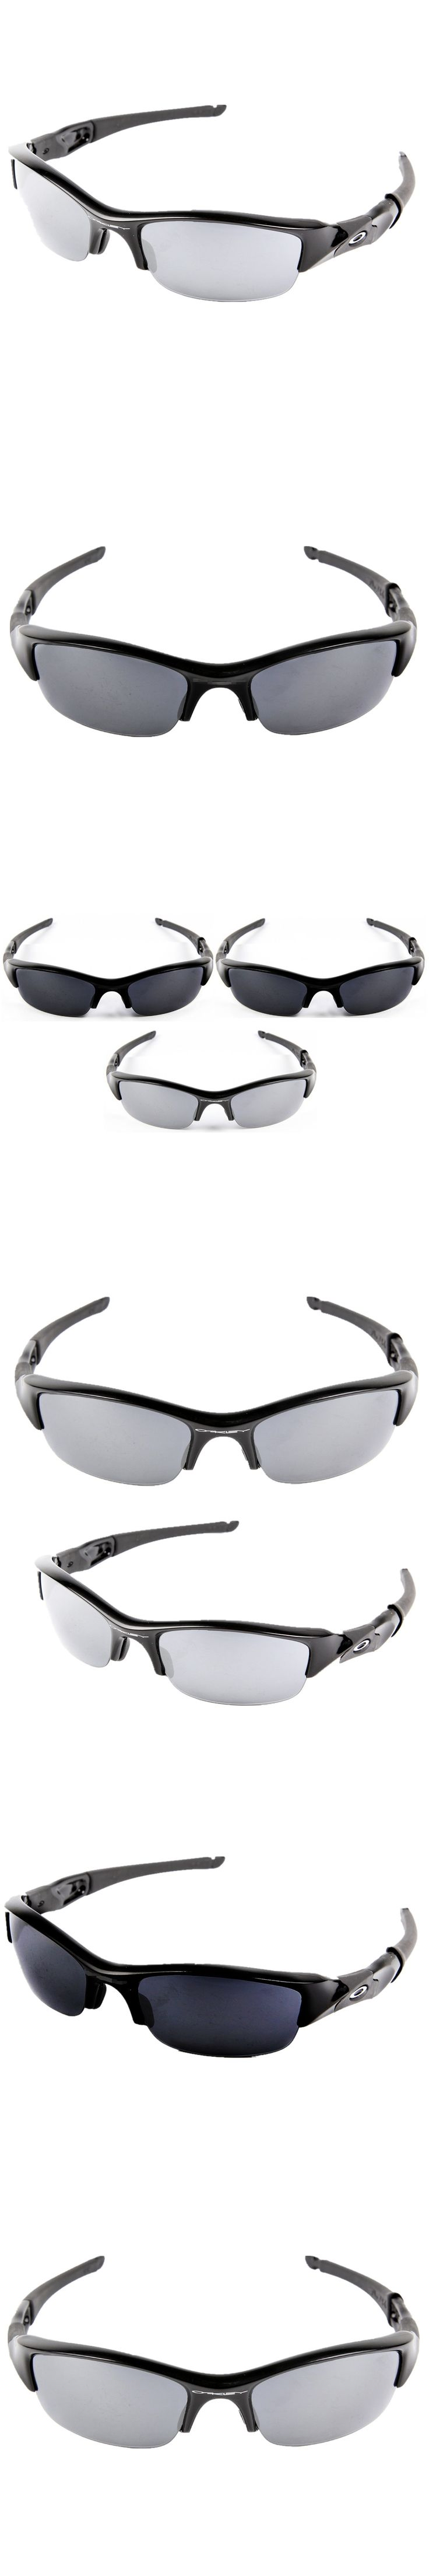 Inew polarized replacement lenses for  Flak Jacket- option colors